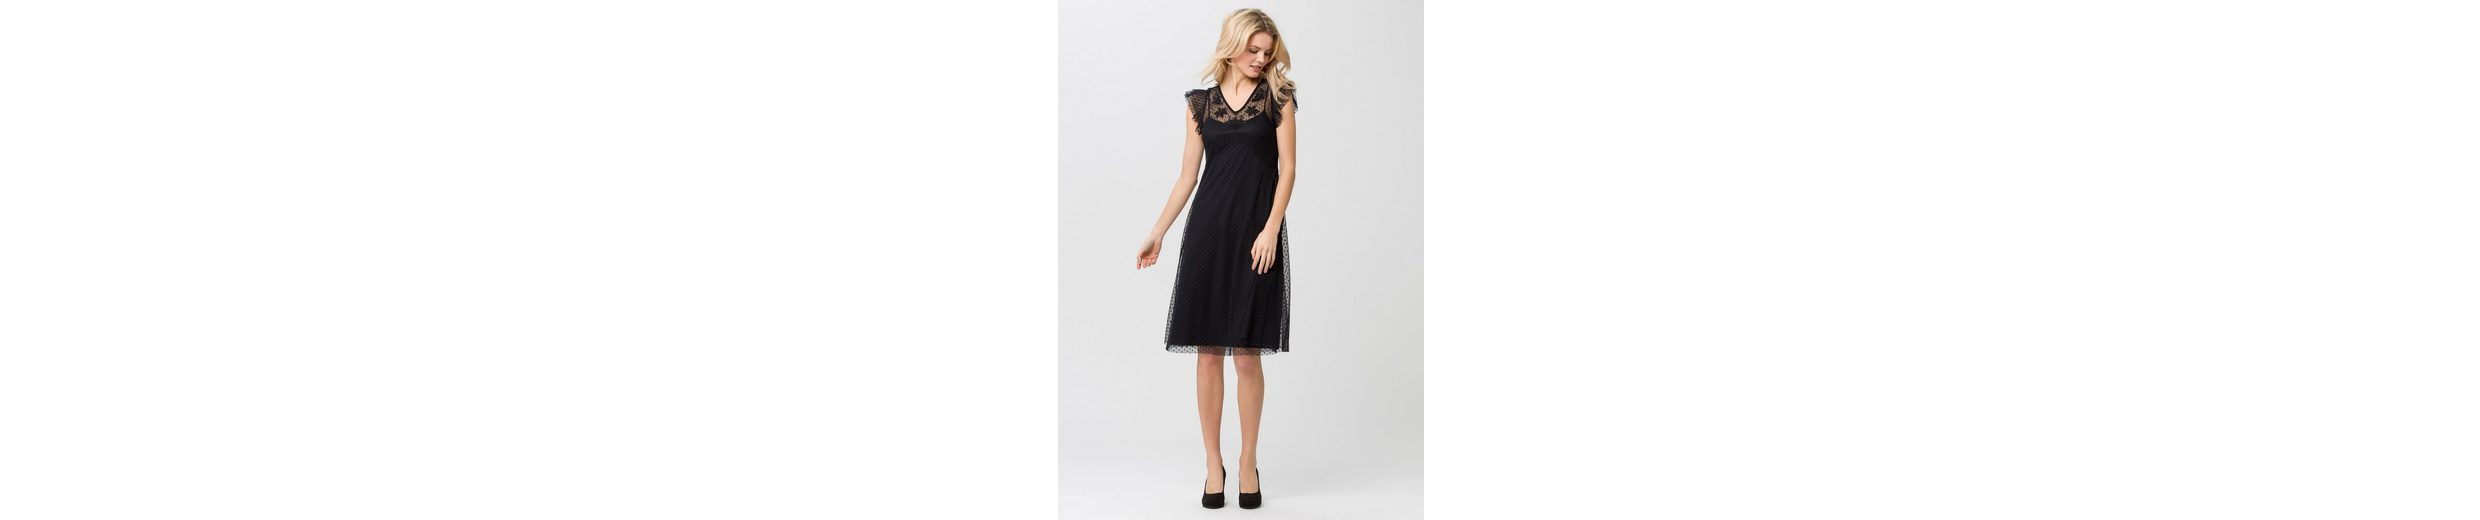 ESPRIT Collection 2-in-1-Kleid, mit Mesh-Überkleid